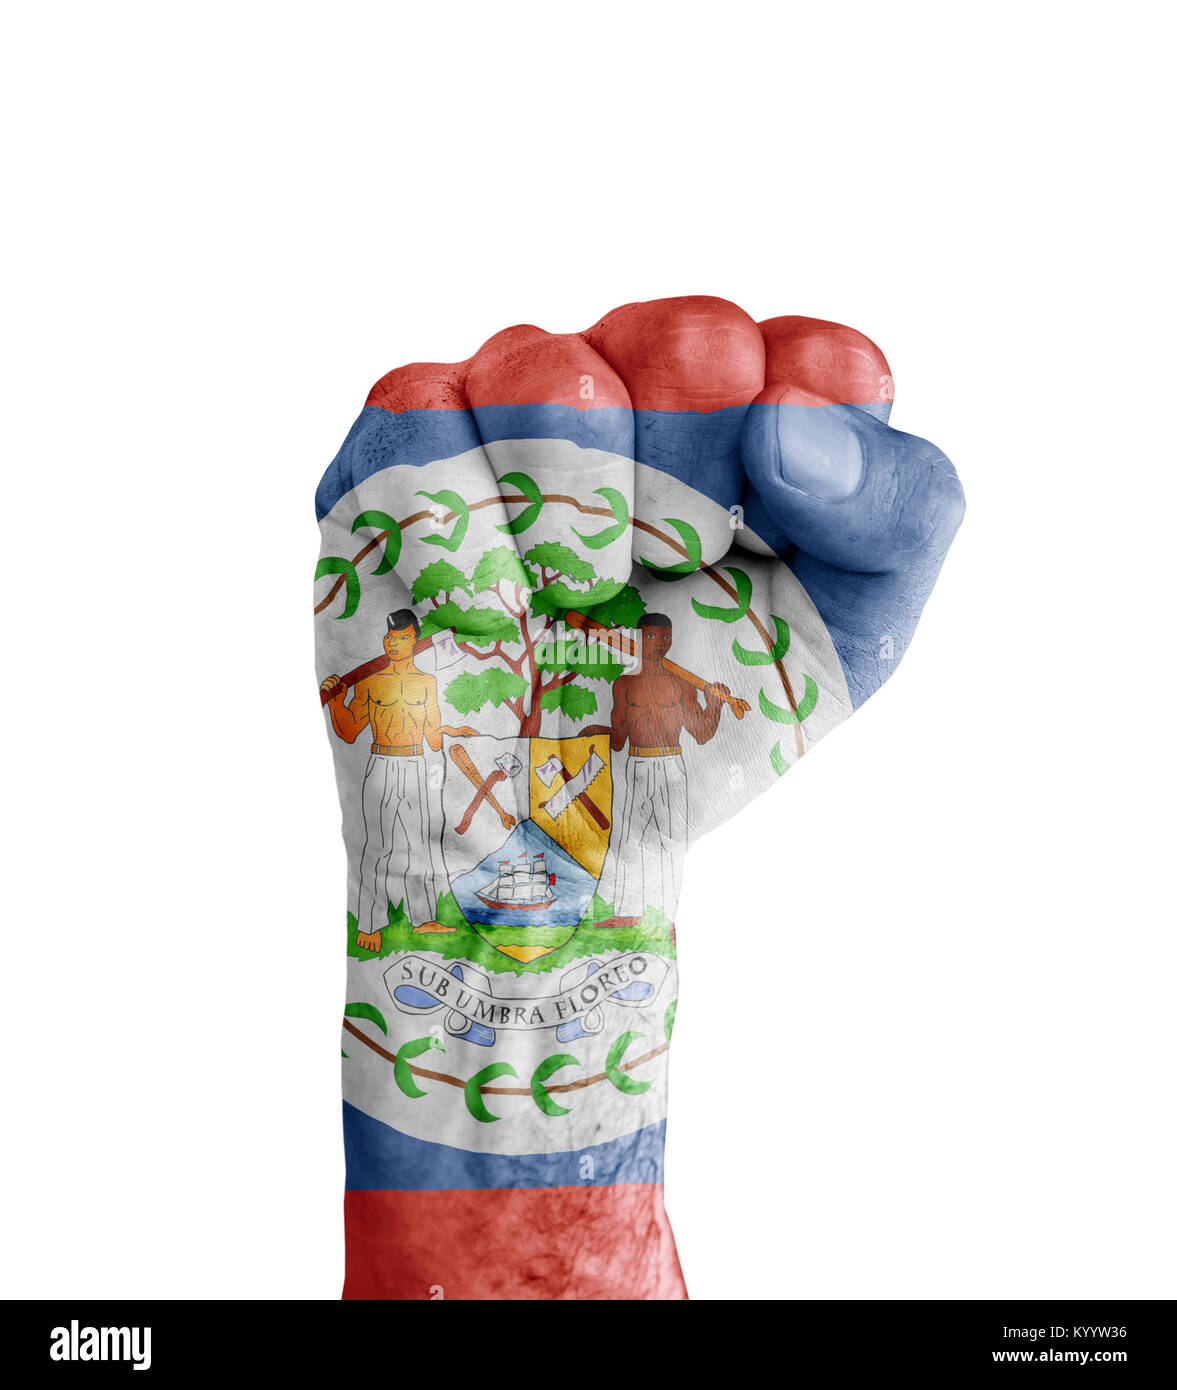 Flag of belize stock photos flag of belize stock images alamy flag of belize painted on human fist like victory symbol stock image biocorpaavc Image collections